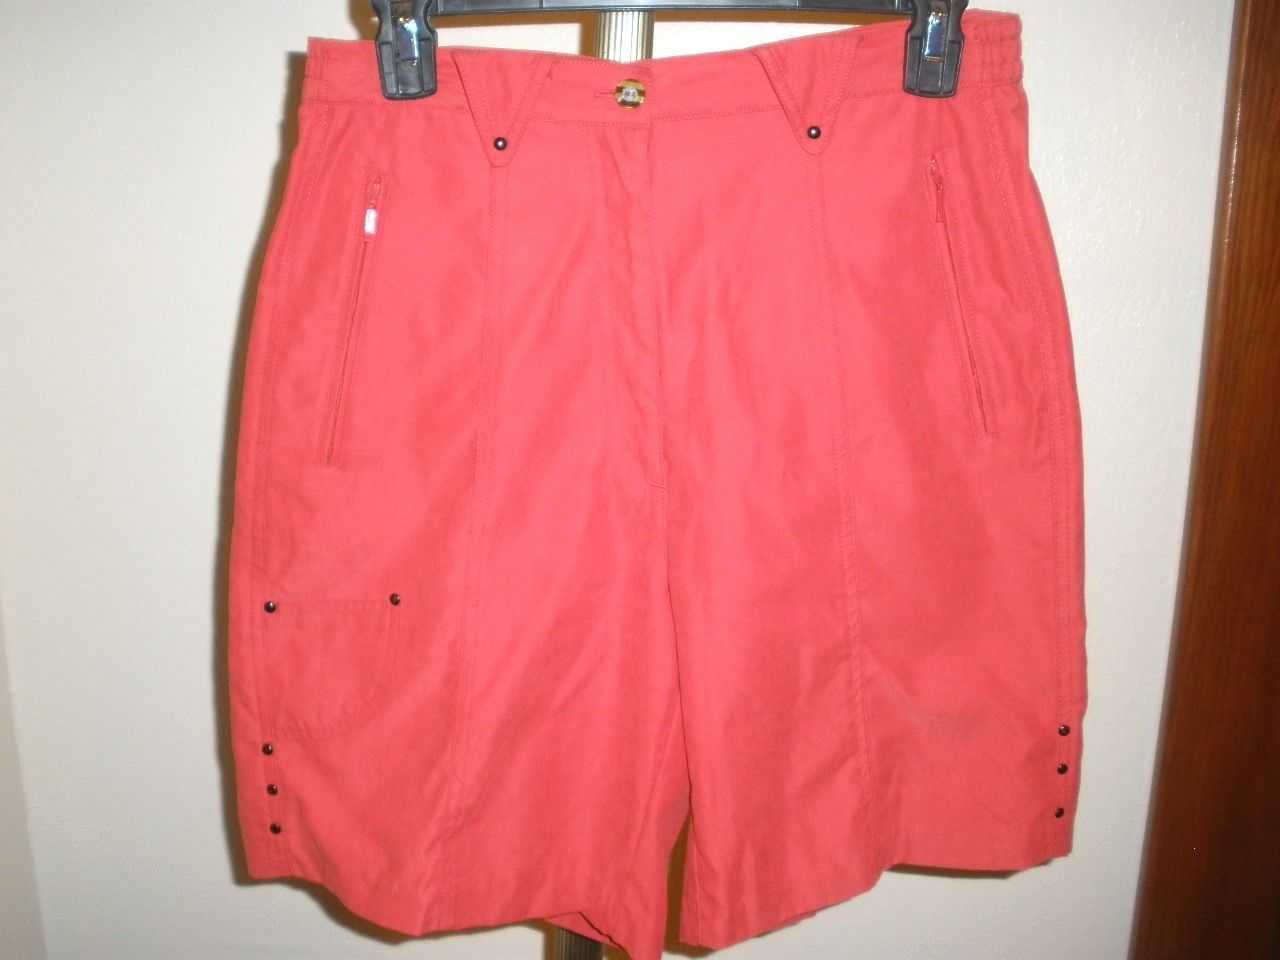 Primary image for PRETTY WOMEN'S JAMIE SADOCK GOLF SHORTS SIZE 8